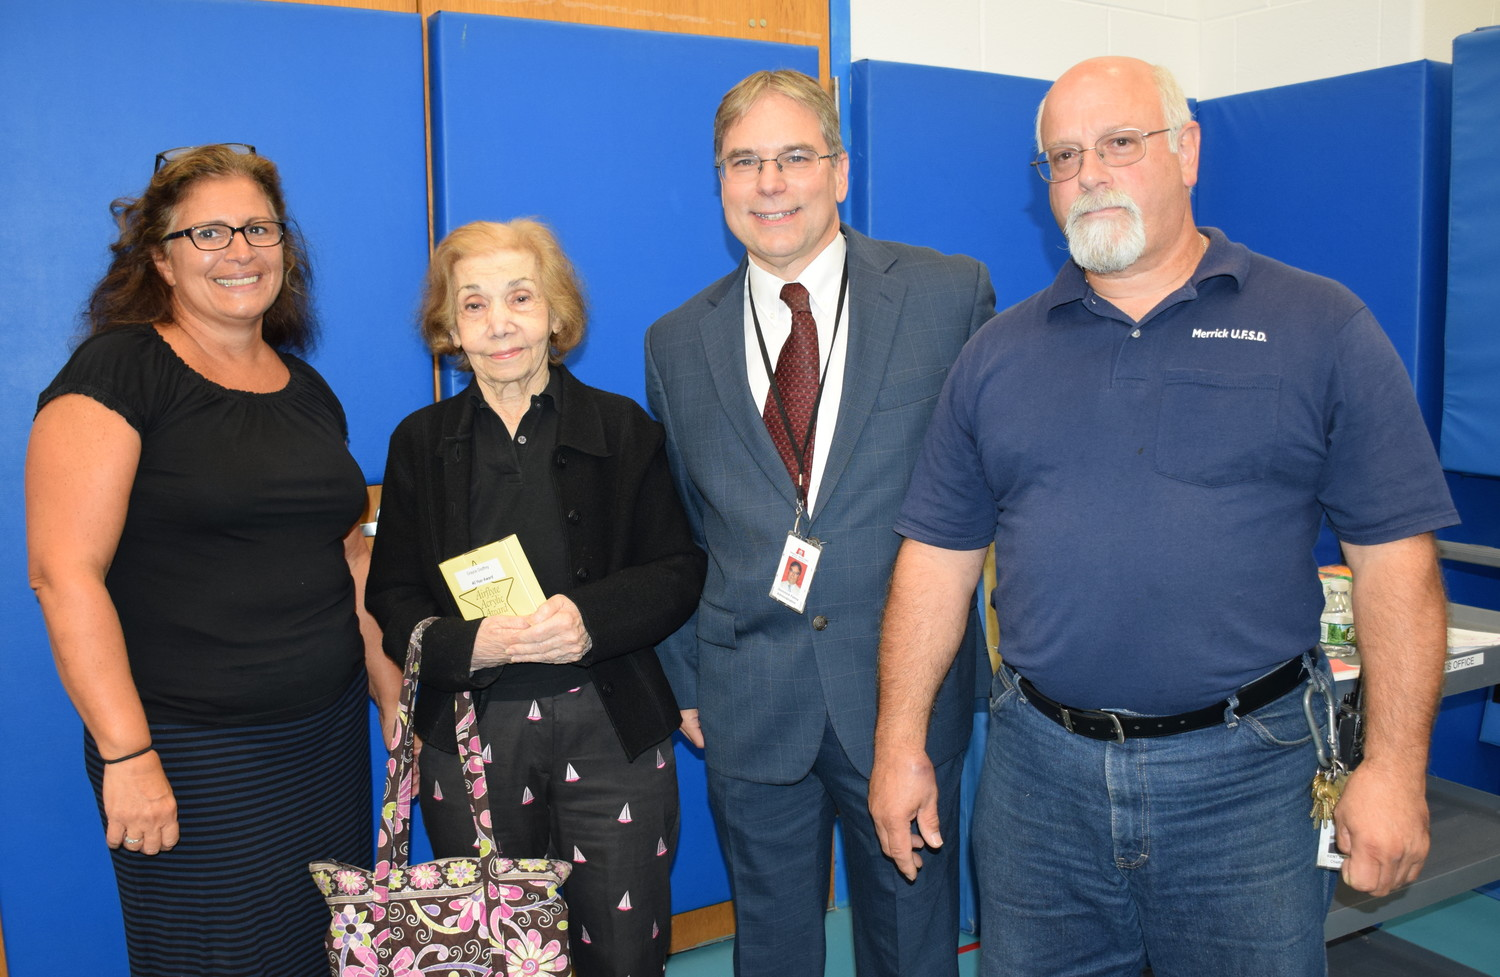 From left: Nancy Russo, Grayce Godfrey, Dr. Dominick Palma, and Kent Erikson. Erikson, Godfrey, Russo and Janet Iseman (not pictured) received special honors for their many years of service to the Merrick schools.